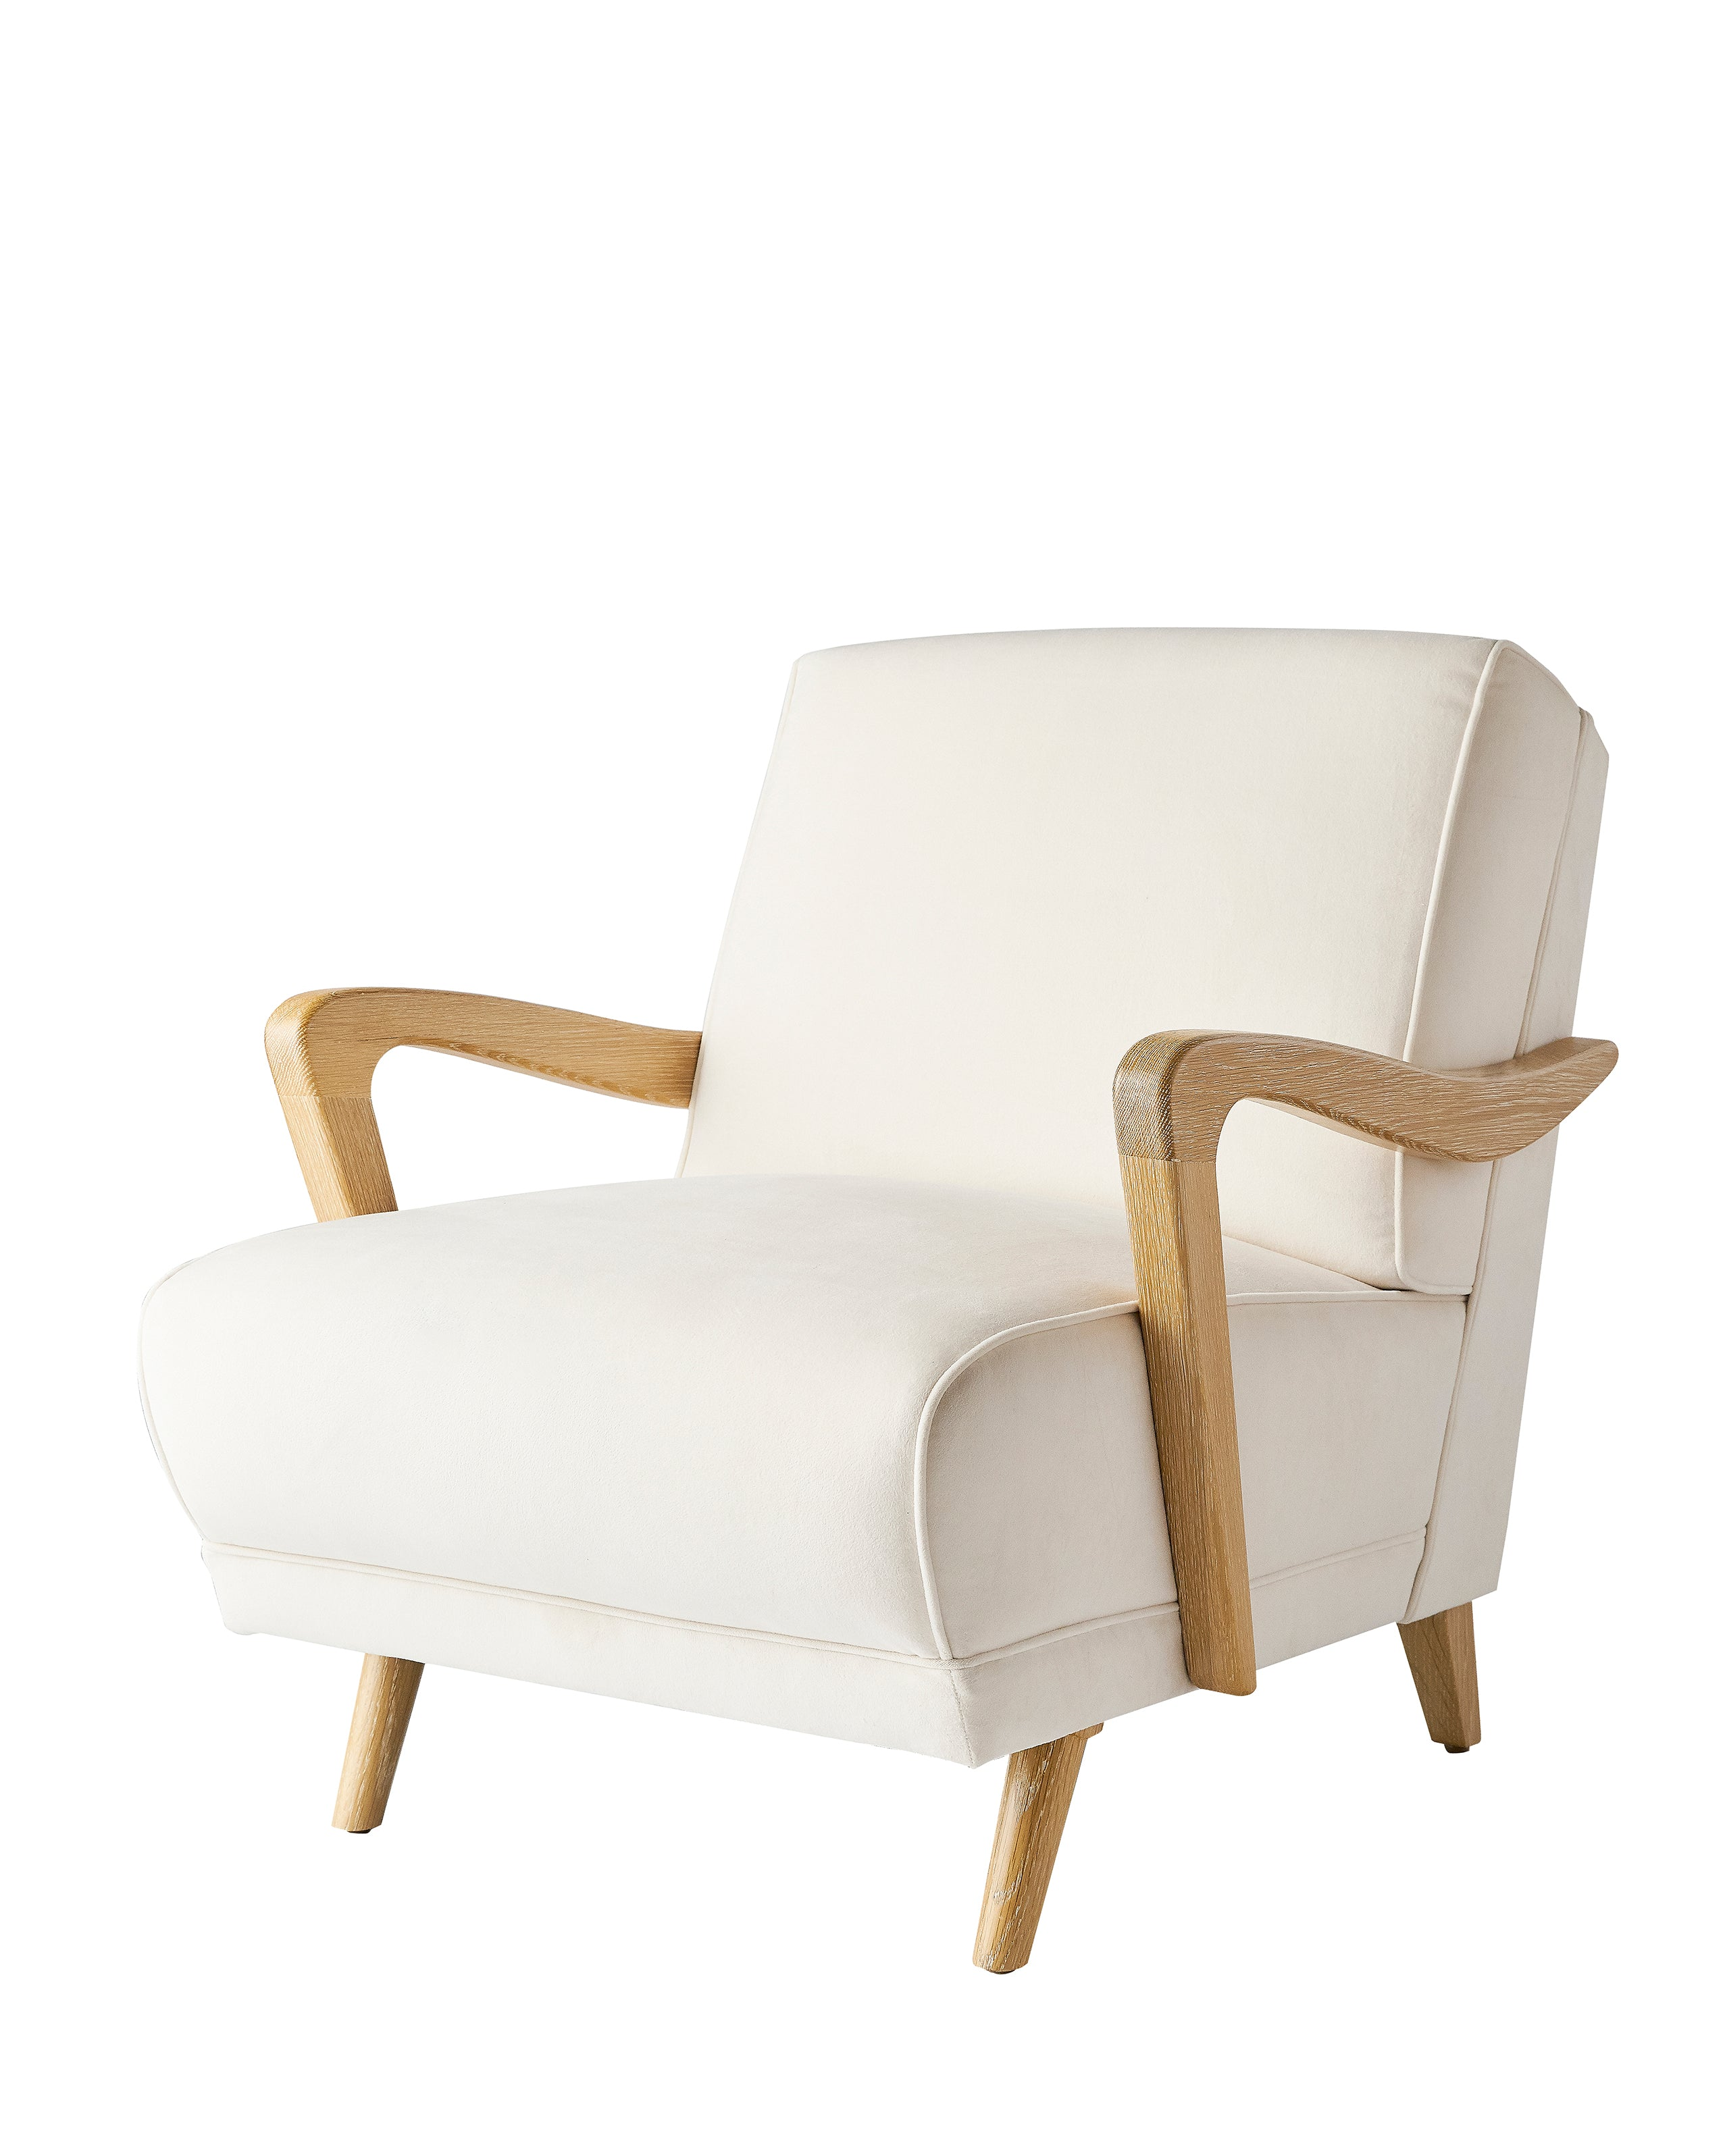 products/1004JacksonChair_SMALL_7b12f8af-7b73-488f-b182-068b48df1880.jpg